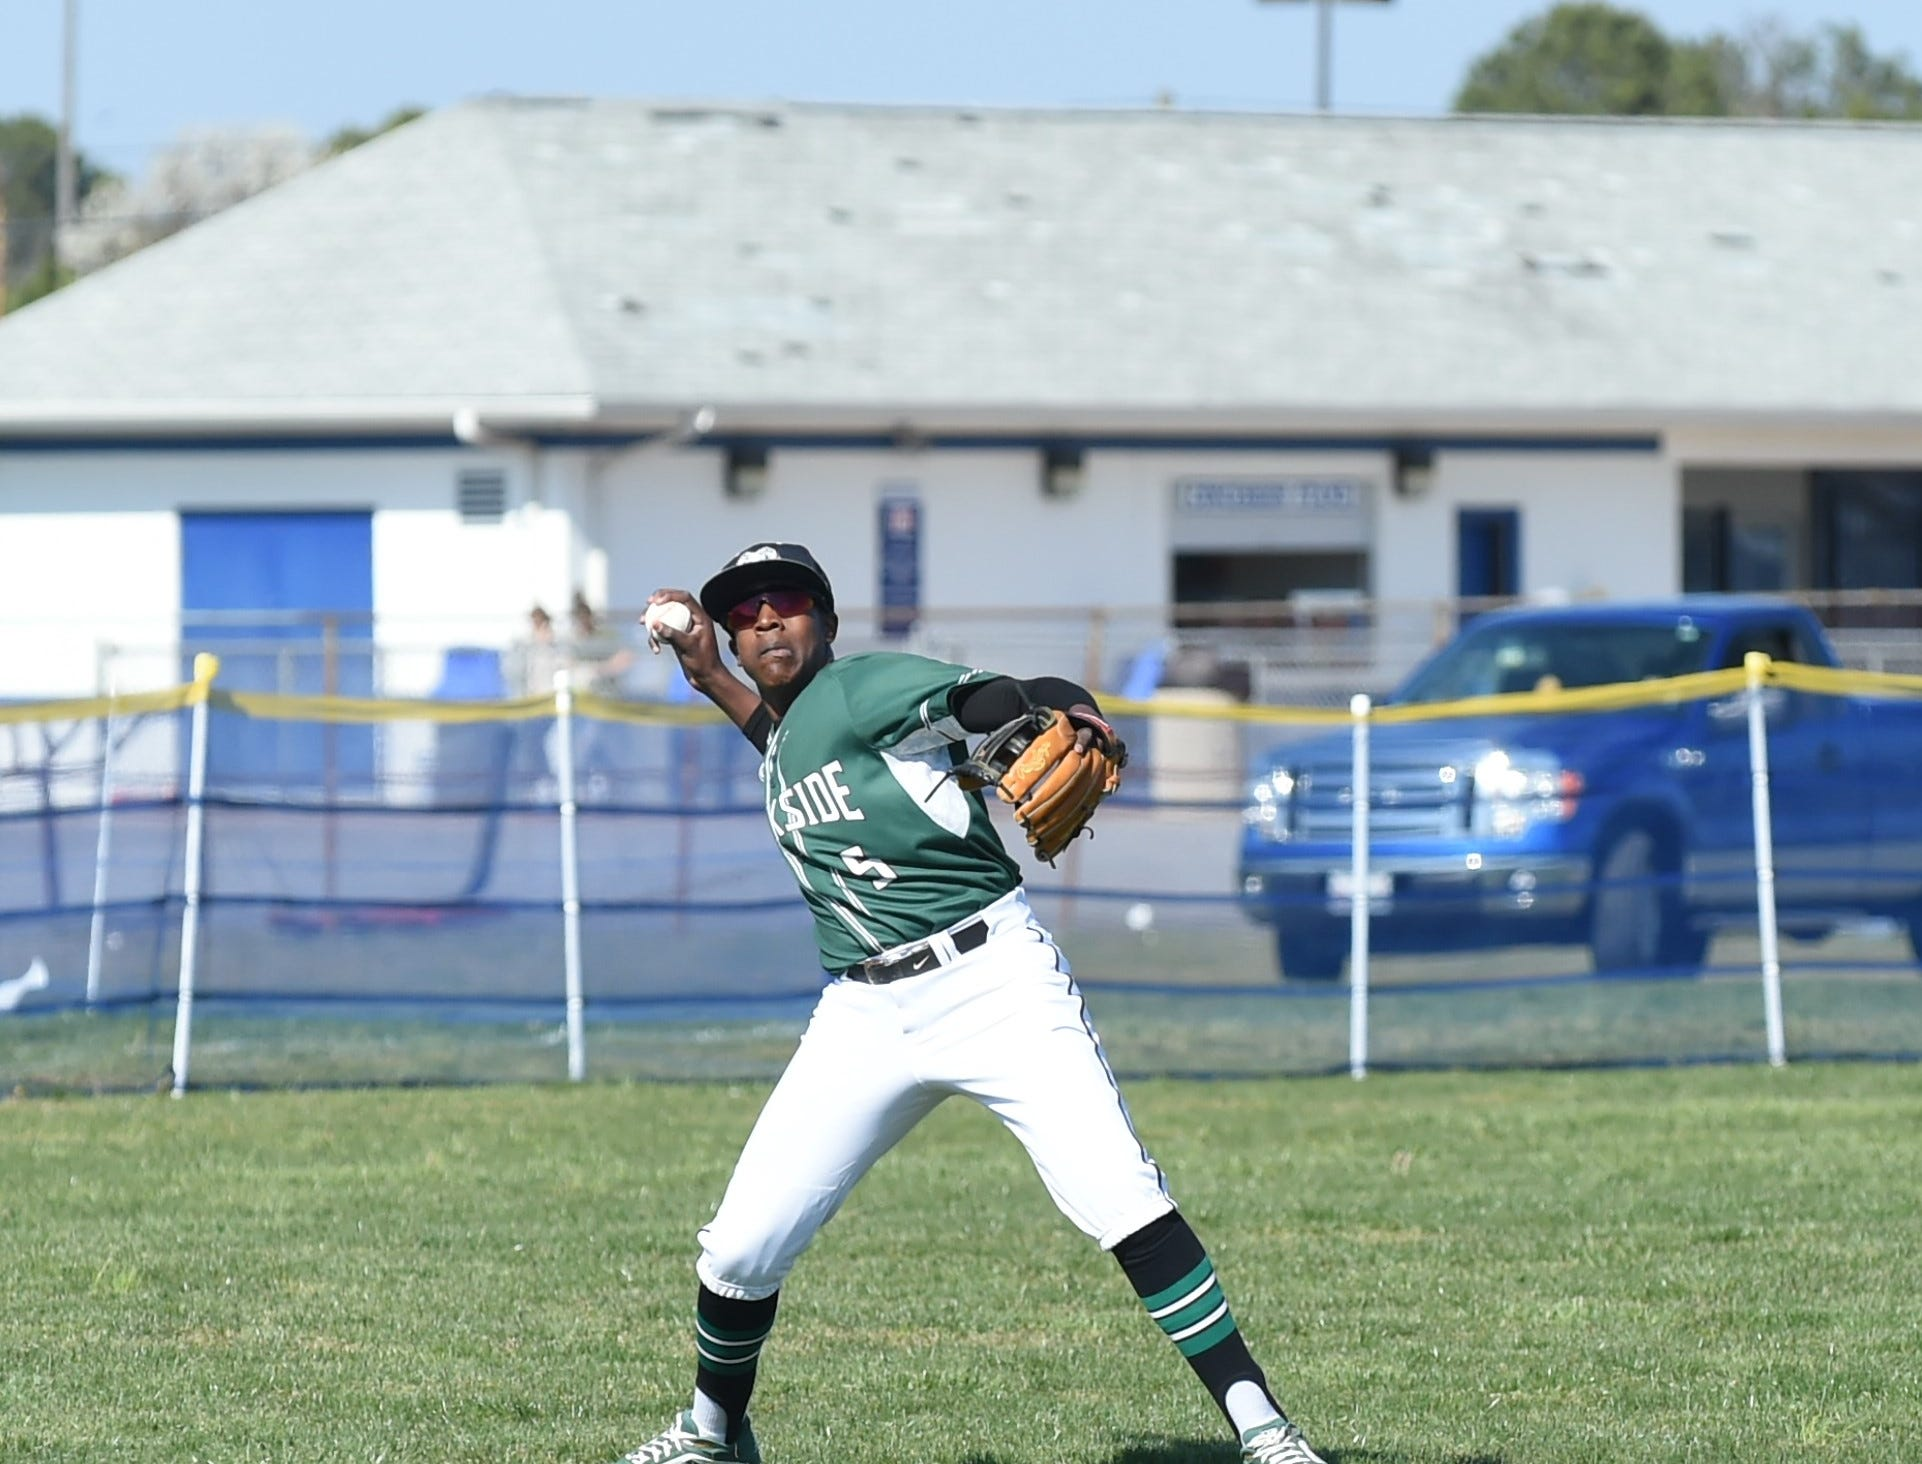 Parkside outfielder Ty'Rae Downing throws the ball in after catching a pop fly on Wednesday, April 3, 2019.